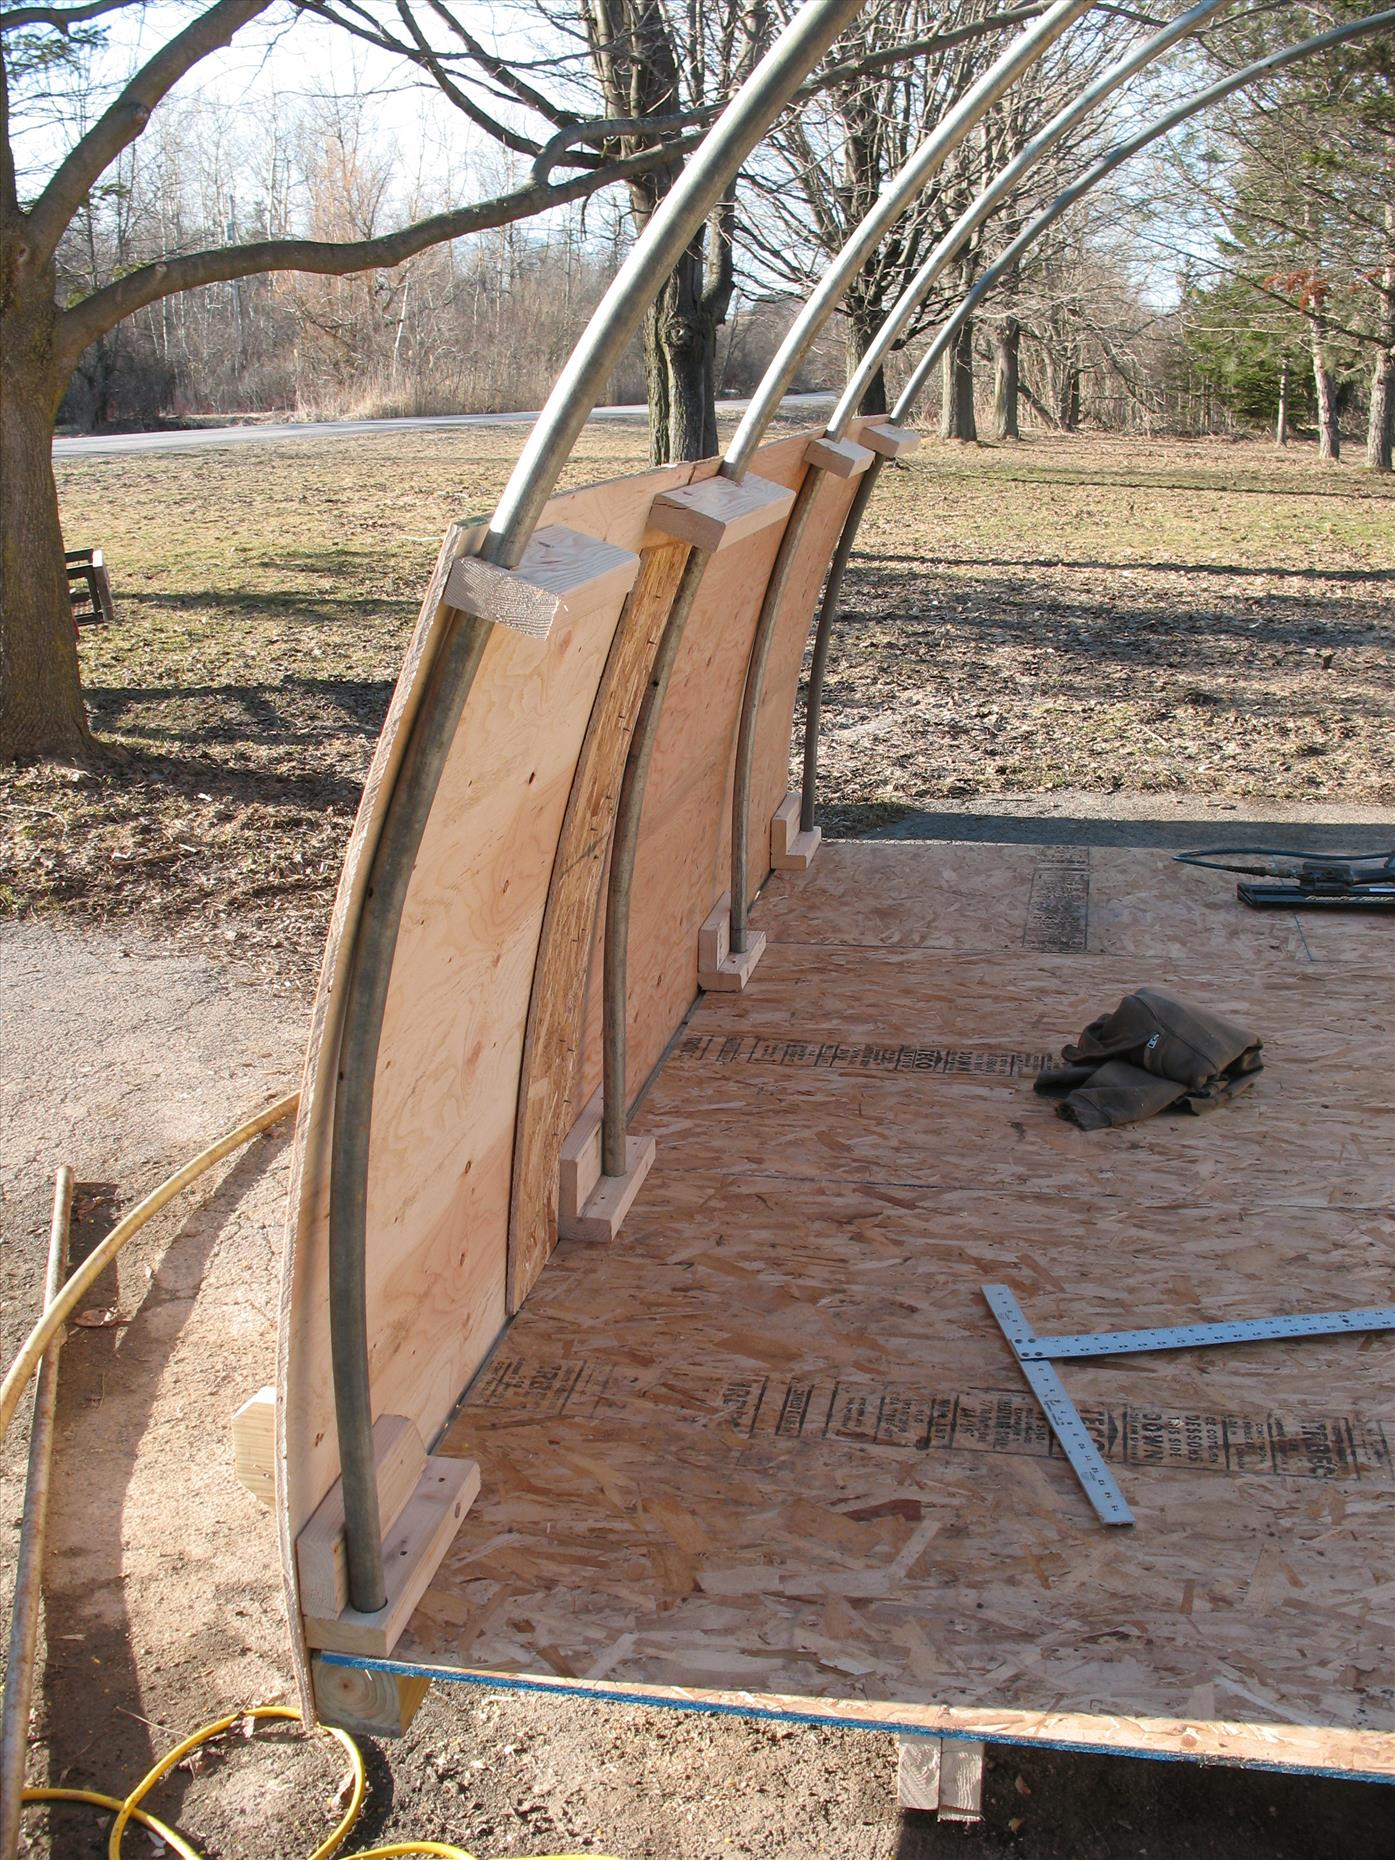 Attaching the frame bents and exterior plywood sheathing (to deter larger predators).